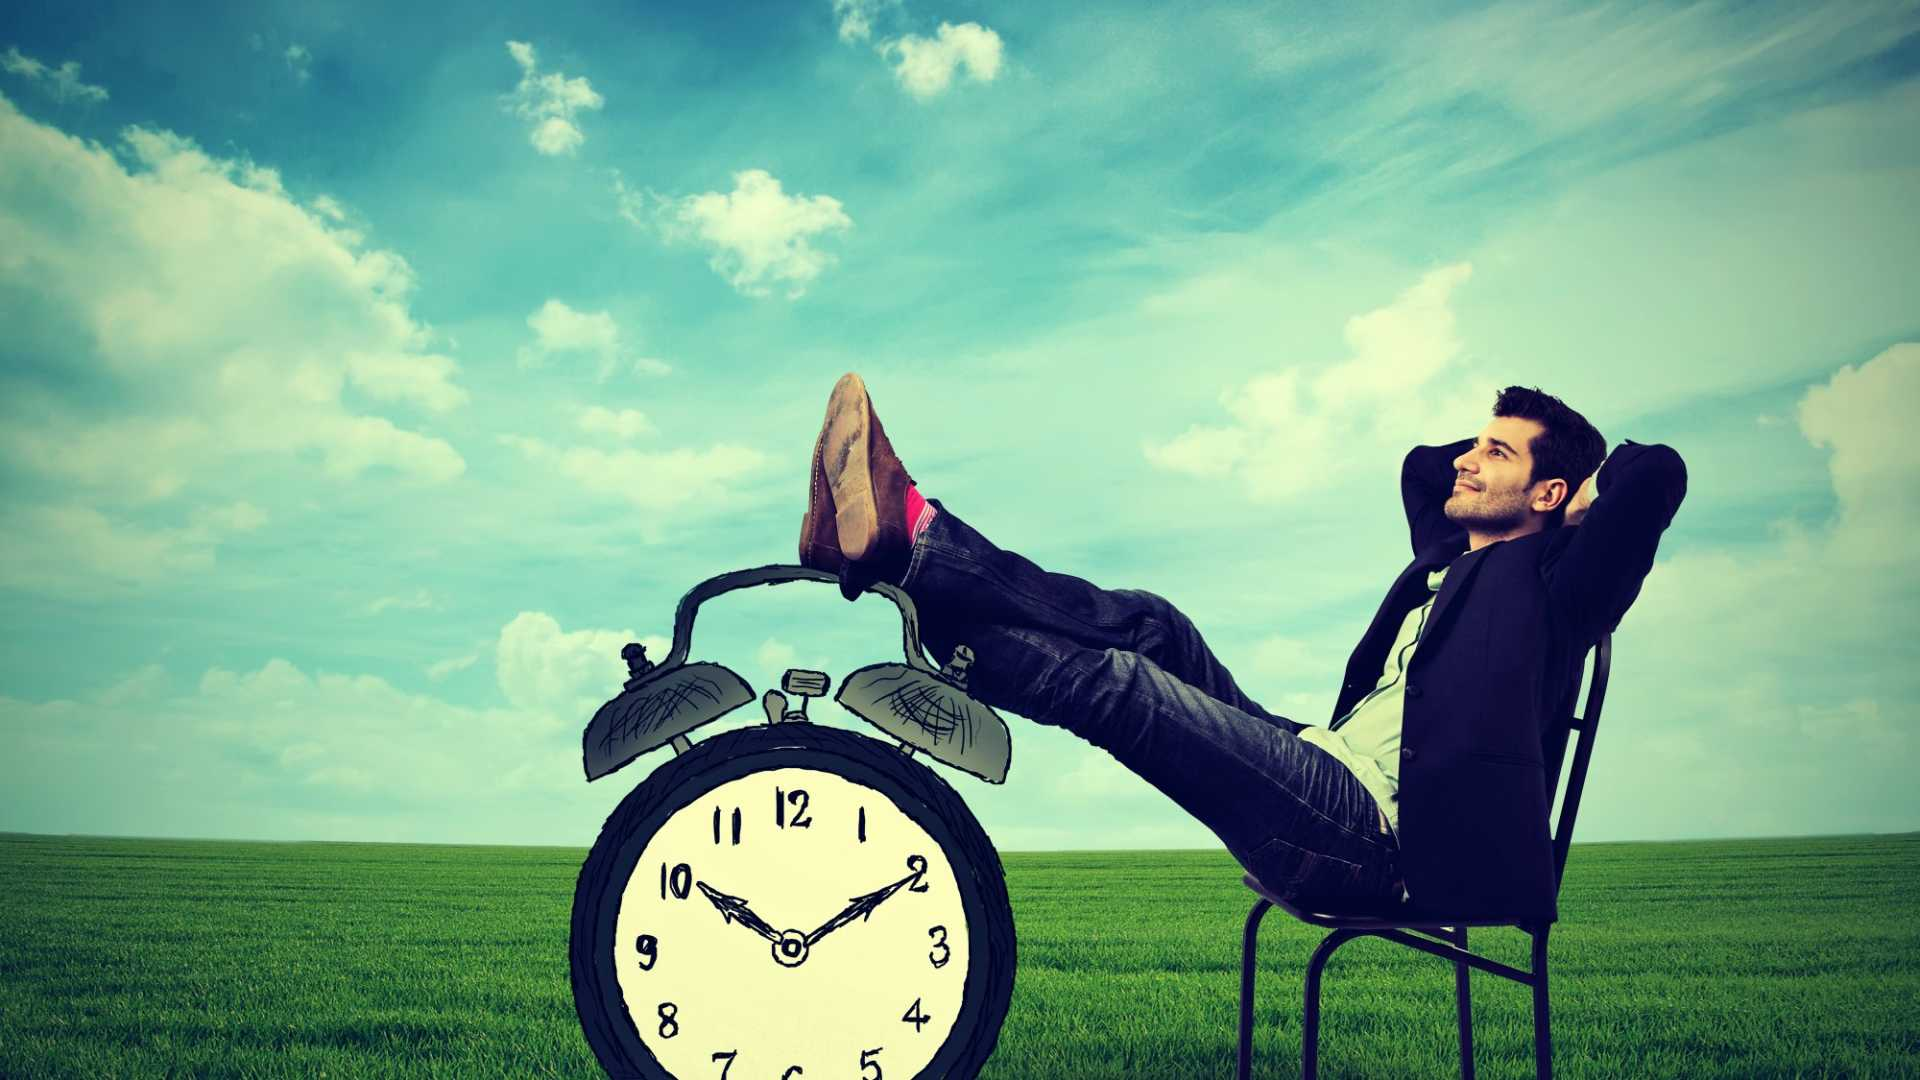 The Productivity-Oriented Case for Using Your Vacation Time This Summer